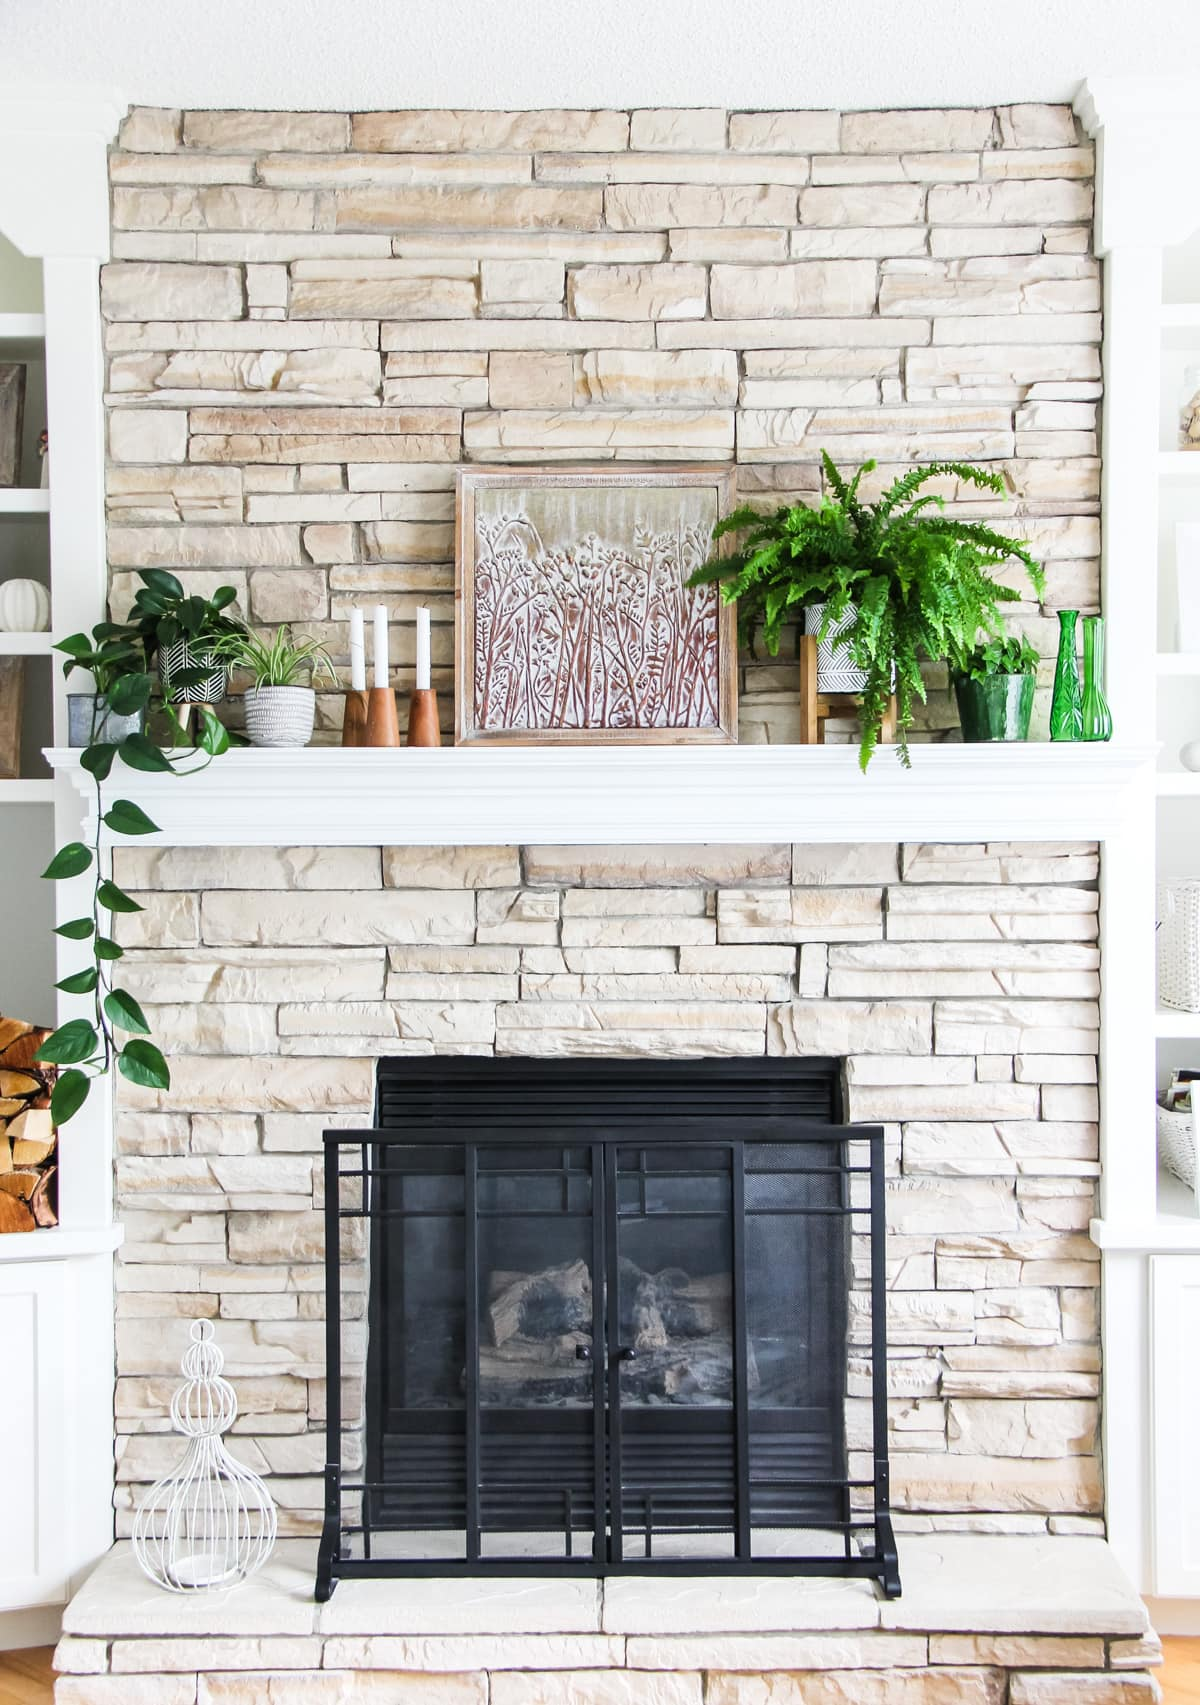 a front view of a light stone fireplace decorated with plants, candles and art.